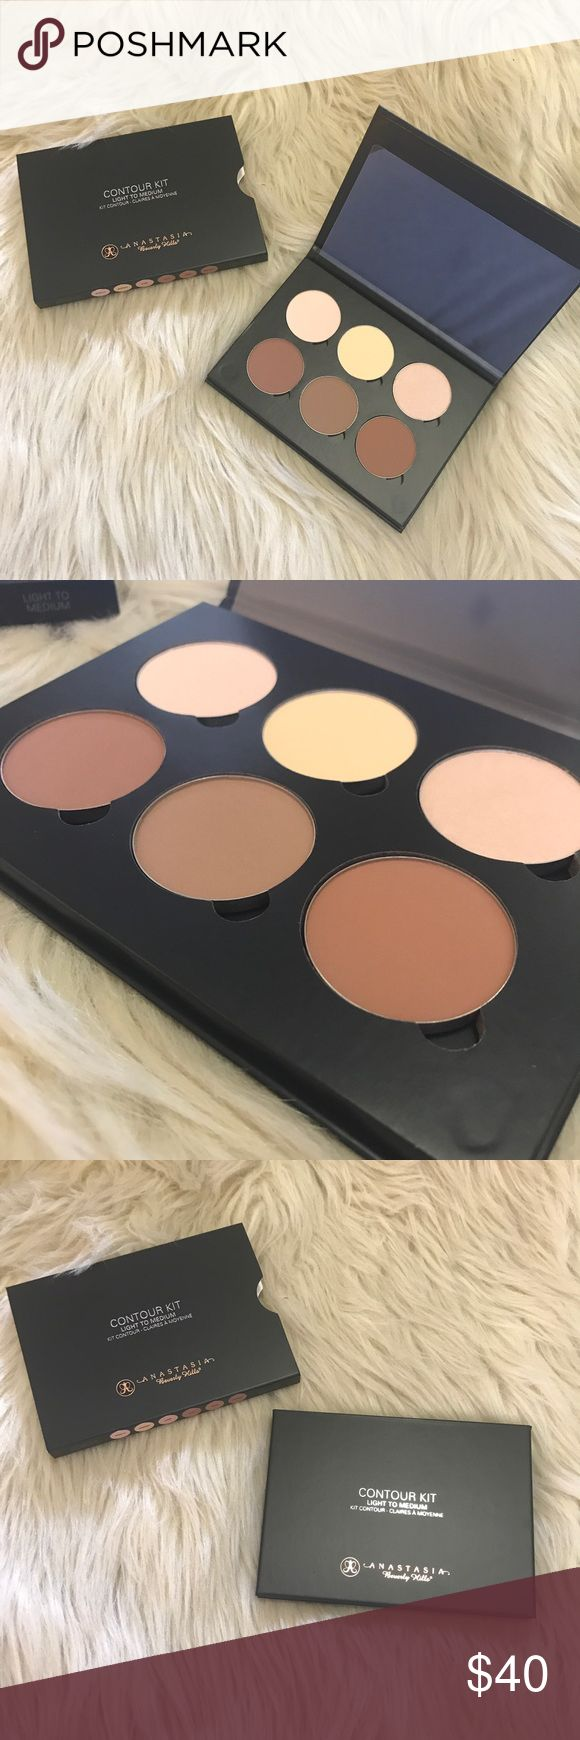 NIB Anastasia Beverly Hills contour kit light-med BRAND NEW IN BOX! NEVER USED OR opened! 100% AUTHENTIC! FULL SIZE!  🎀 Anastasia Beverly Hills Makeup Face Powder